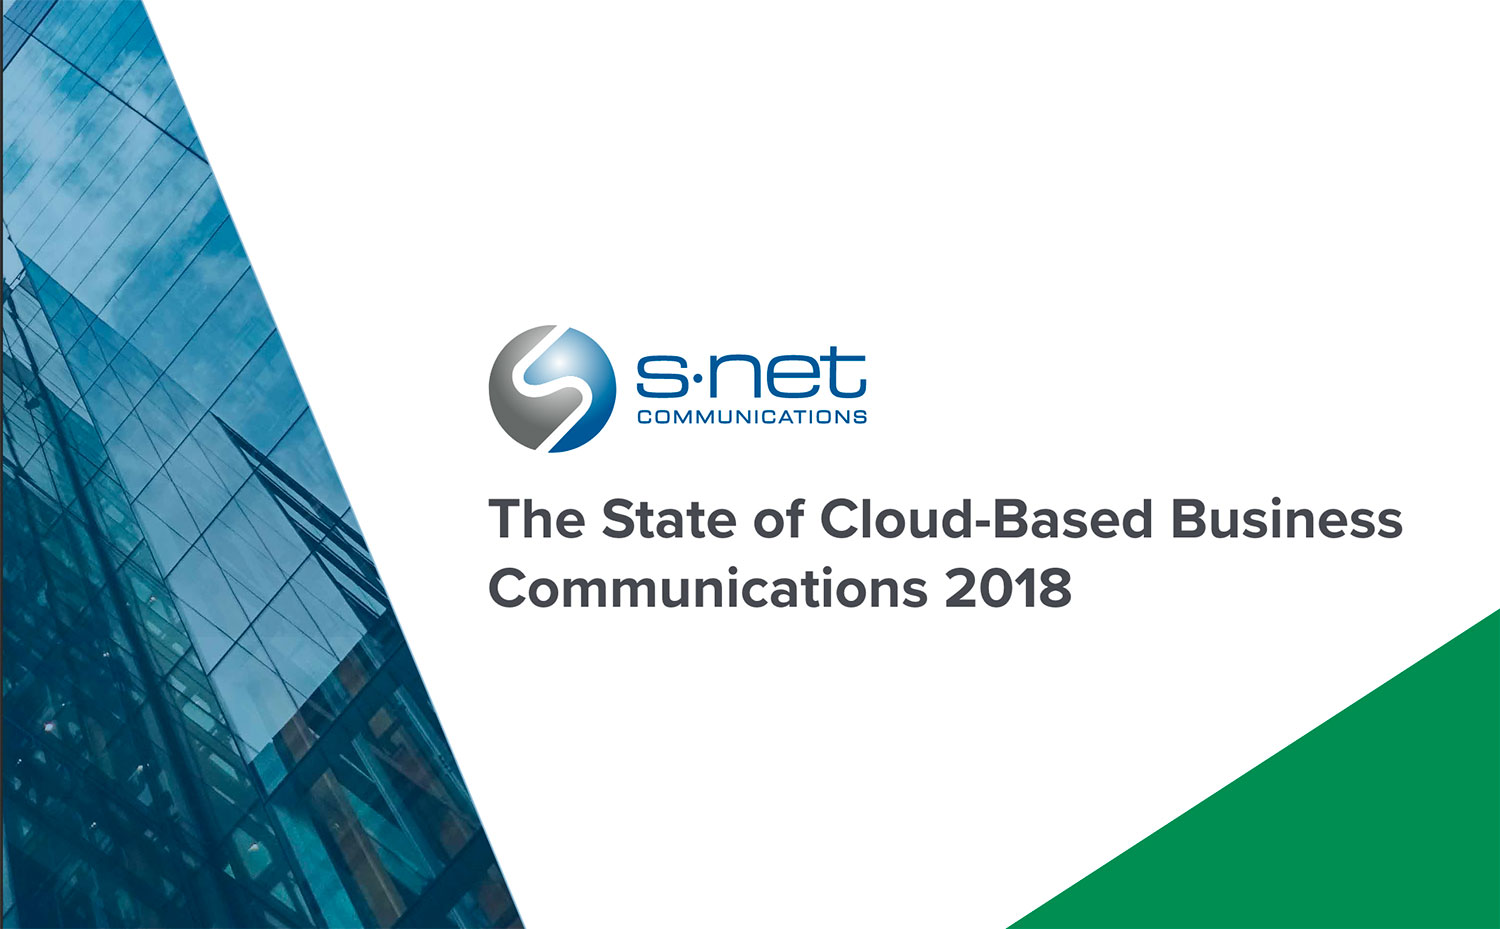 State of Cloud-Based Business Communications